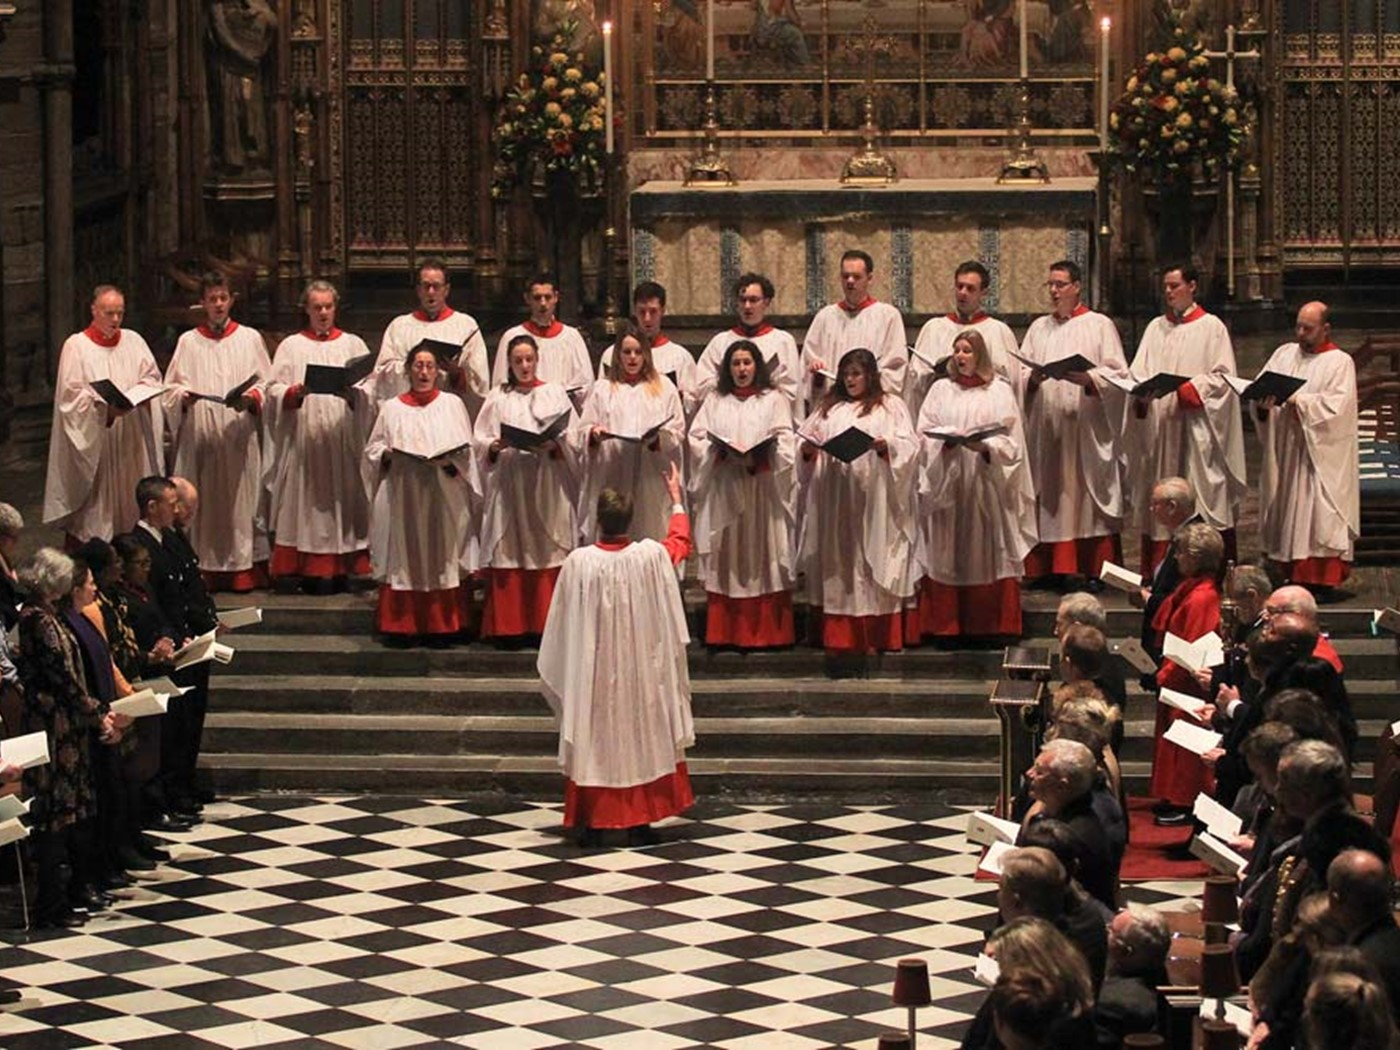 The Special Service Choir of Westminster Abbey sings 'Once in Royal David's City'